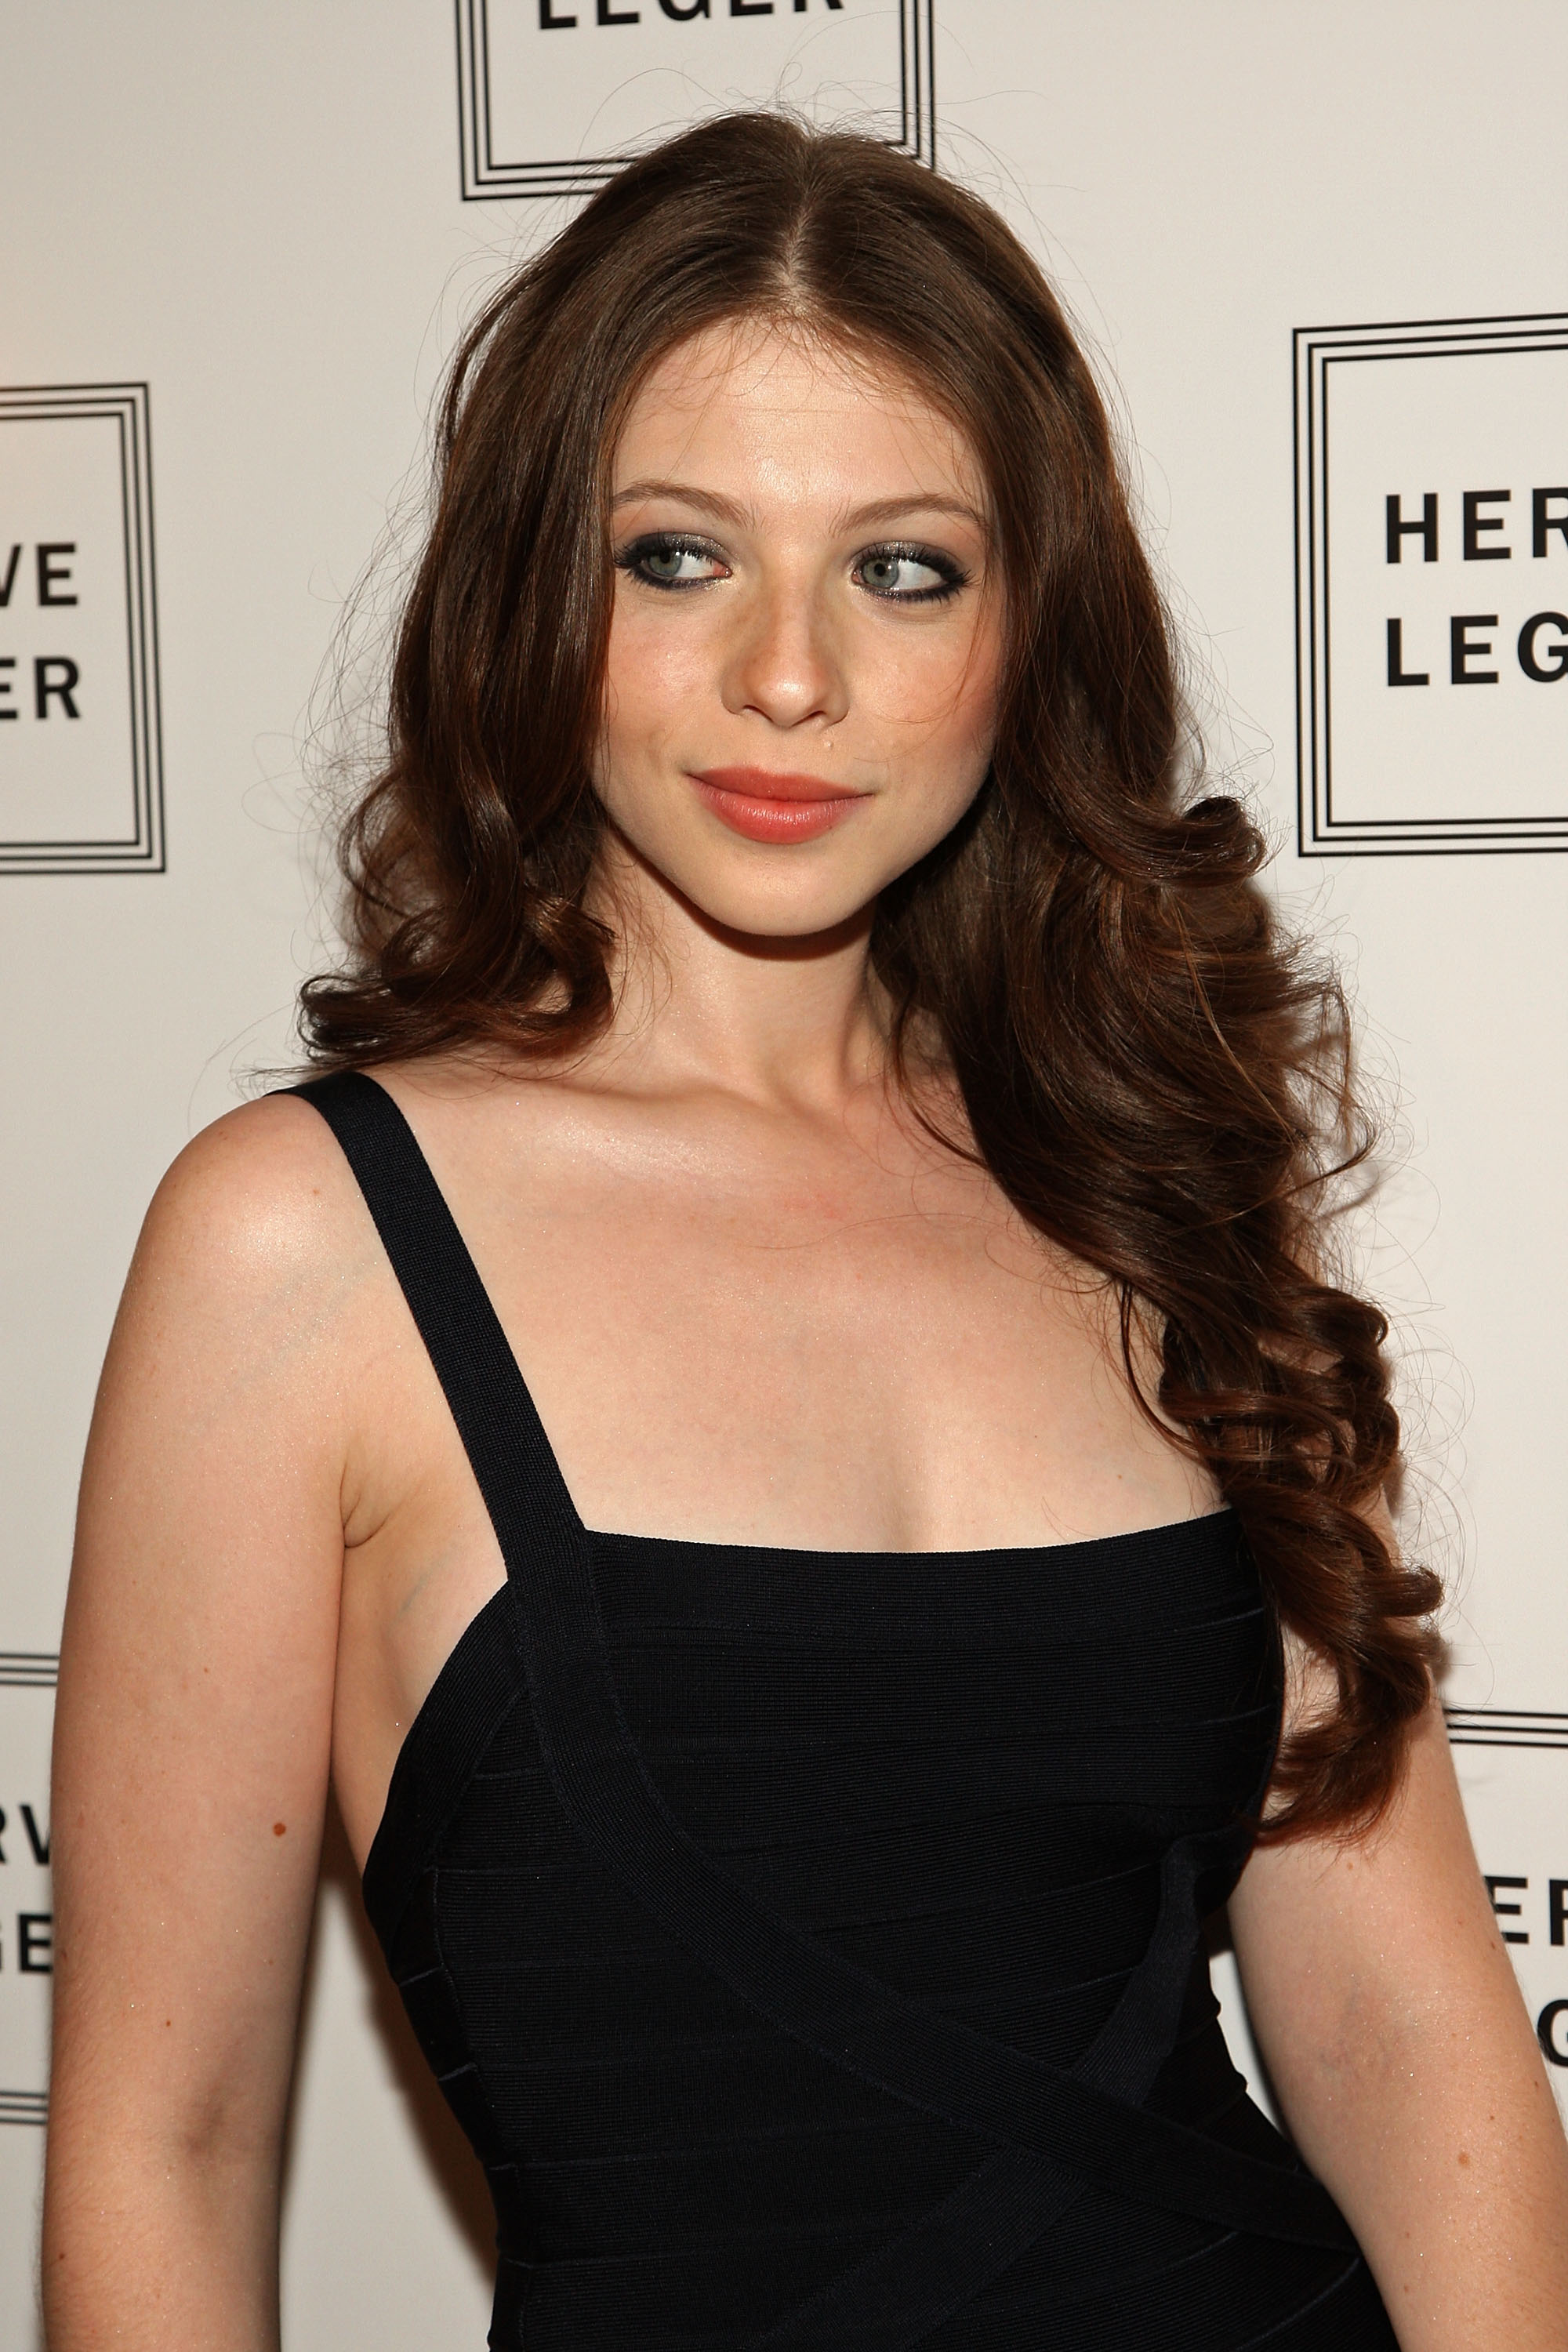 Michelle Trachtenberg Wallpapers High Quality | Download Free